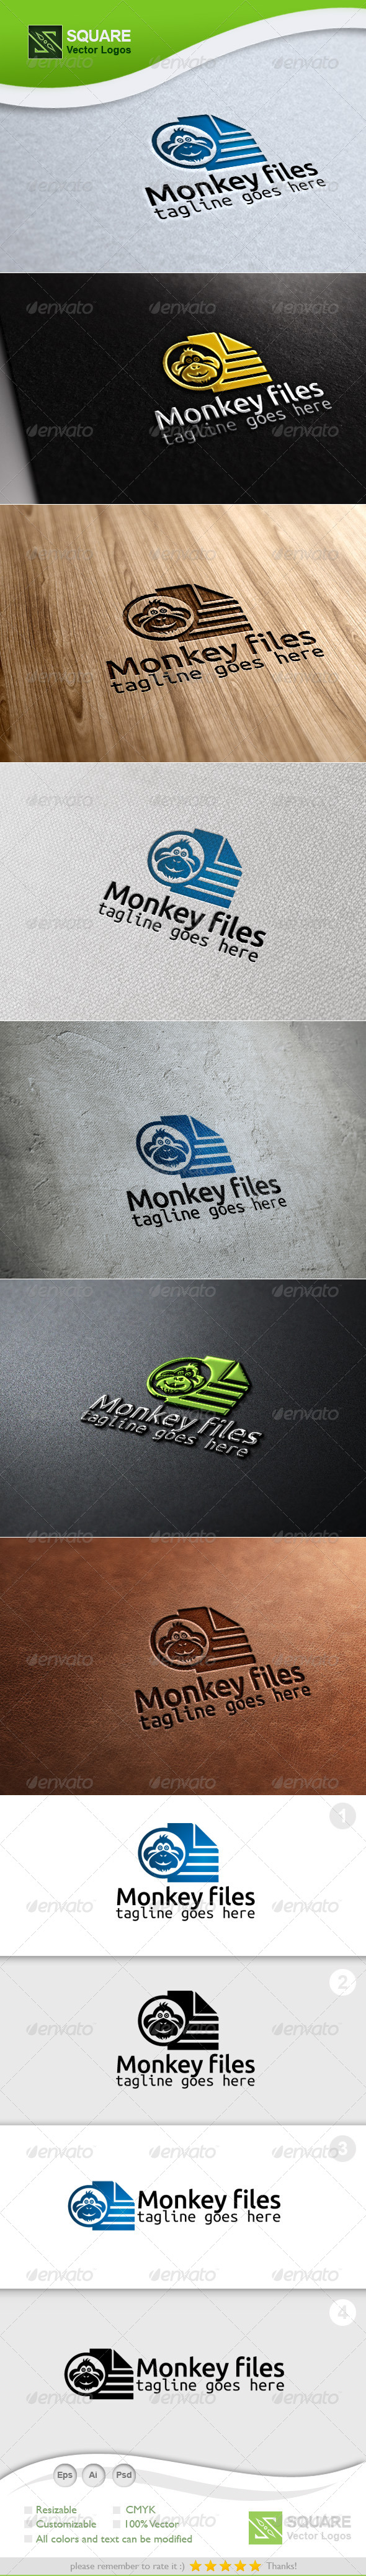 GraphicRiver Monkey Files Vector Logo Template 6694459